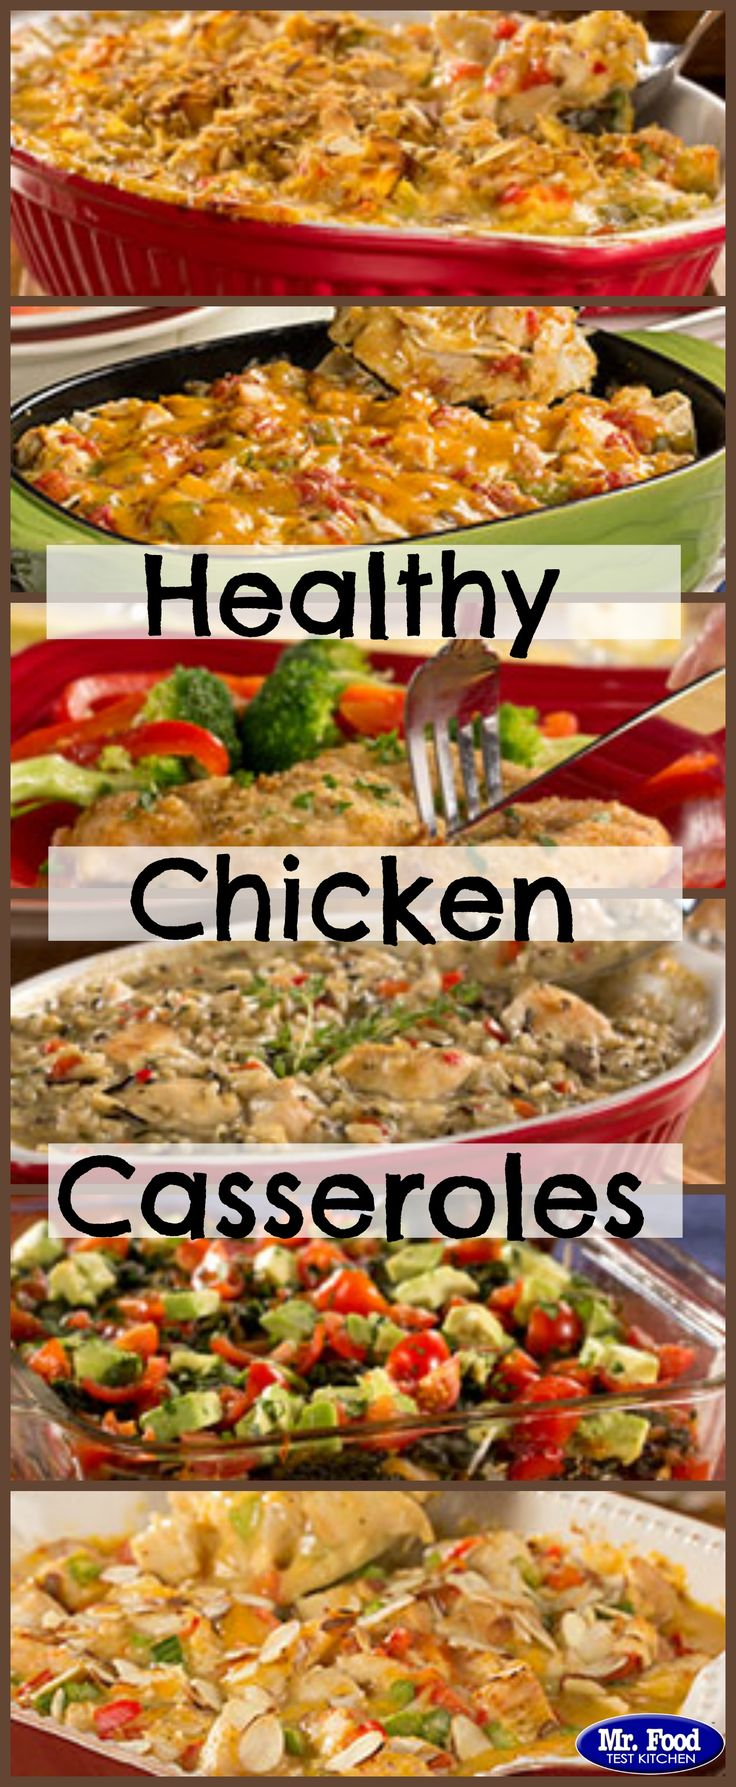 Healthy Chicken Casseroles - Feel good about dinner when you serve up these healthy chicken recipes!